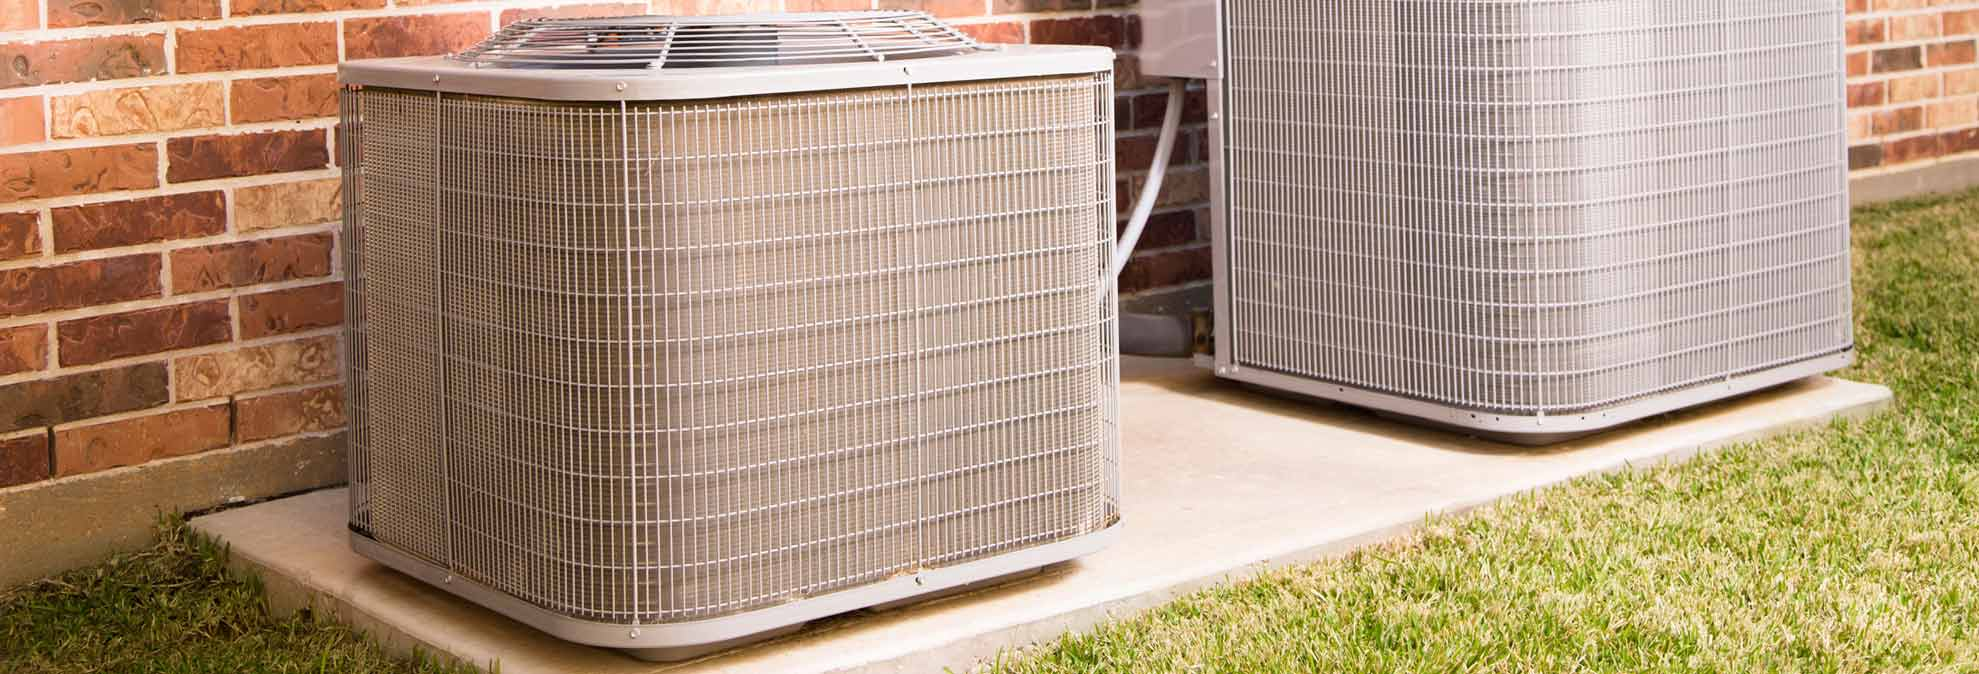 Consumer Reports: Ranking the best HVAC systems - YouTube